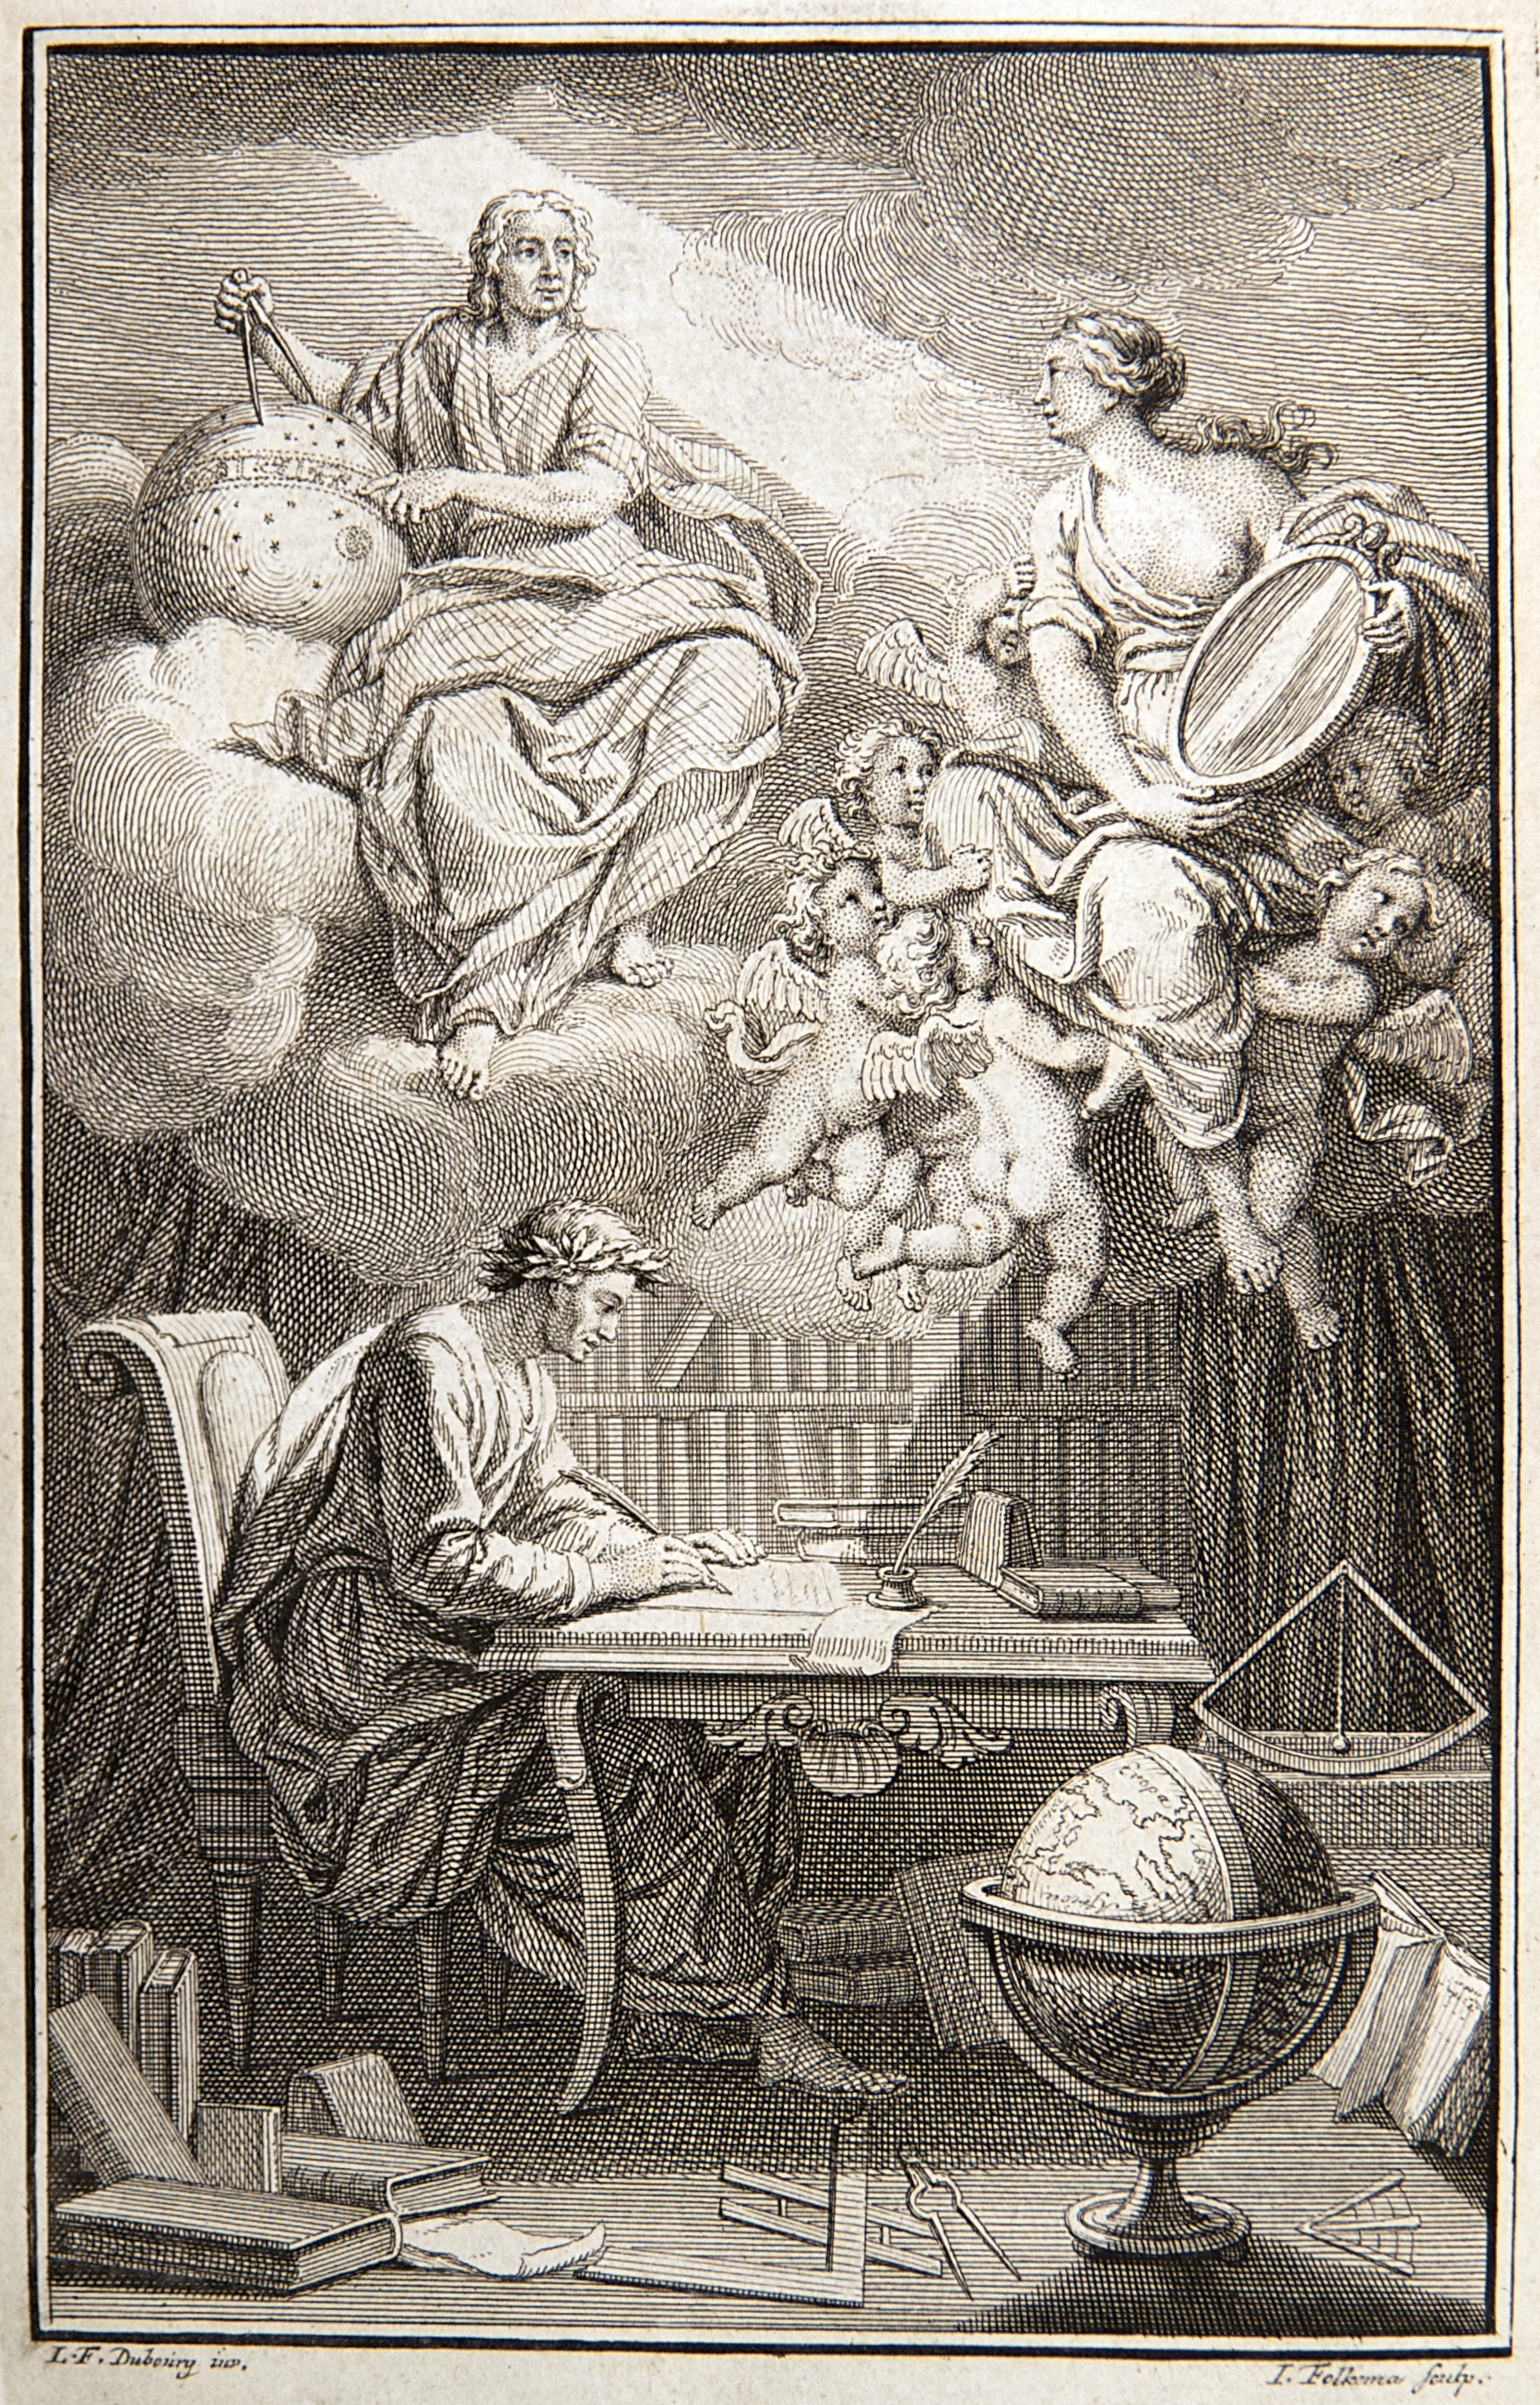 """The frontispiece of the """"Elements of the philosophy of Newton"""", Voltaire, 1738."""